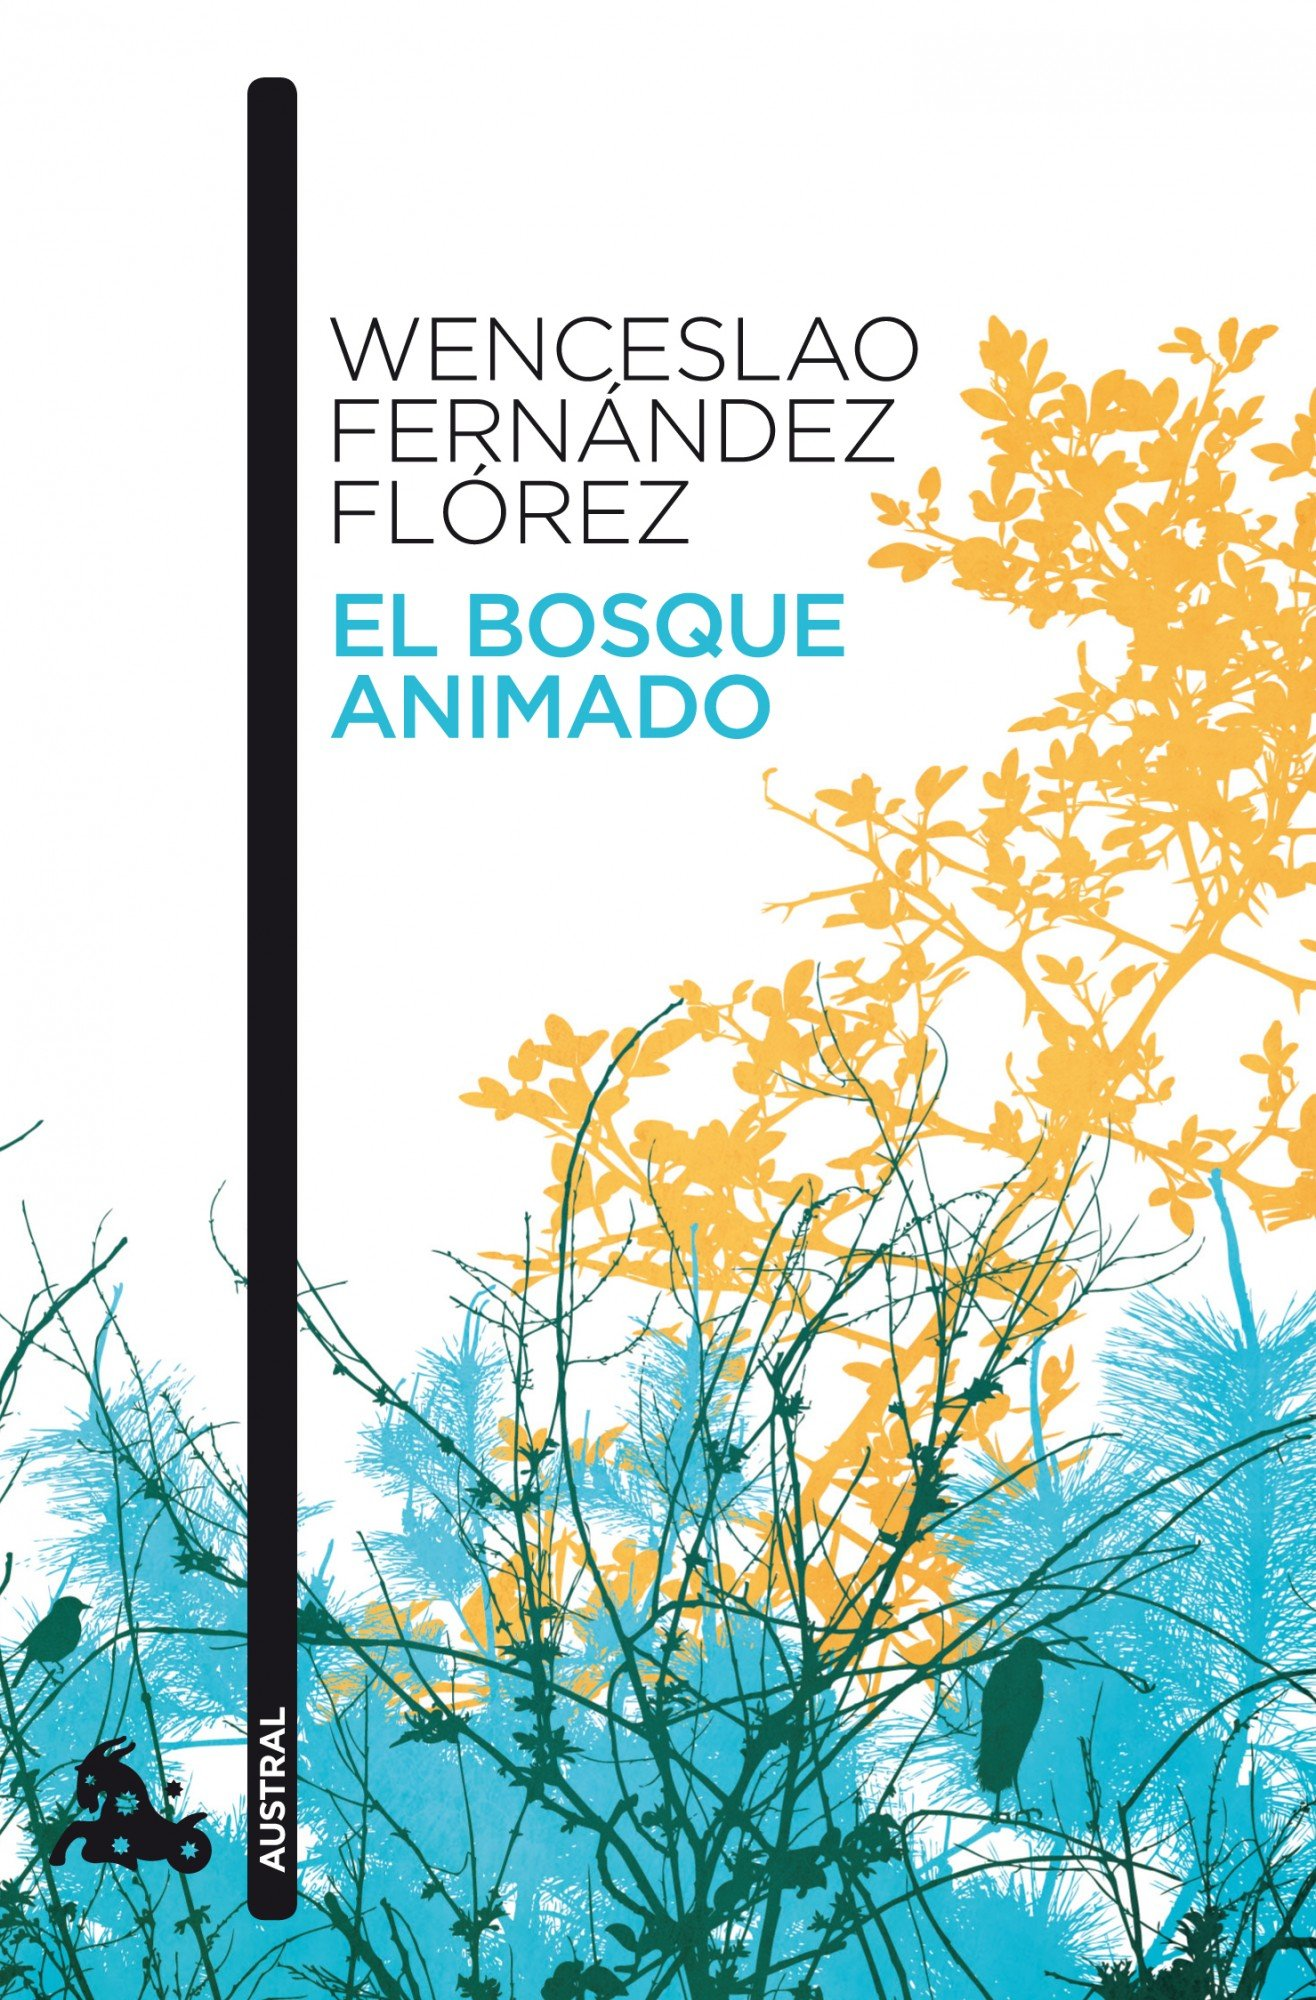 El bosque animado (Narrativa): Amazon.es: Wenceslao Fernández Flórez: Libros